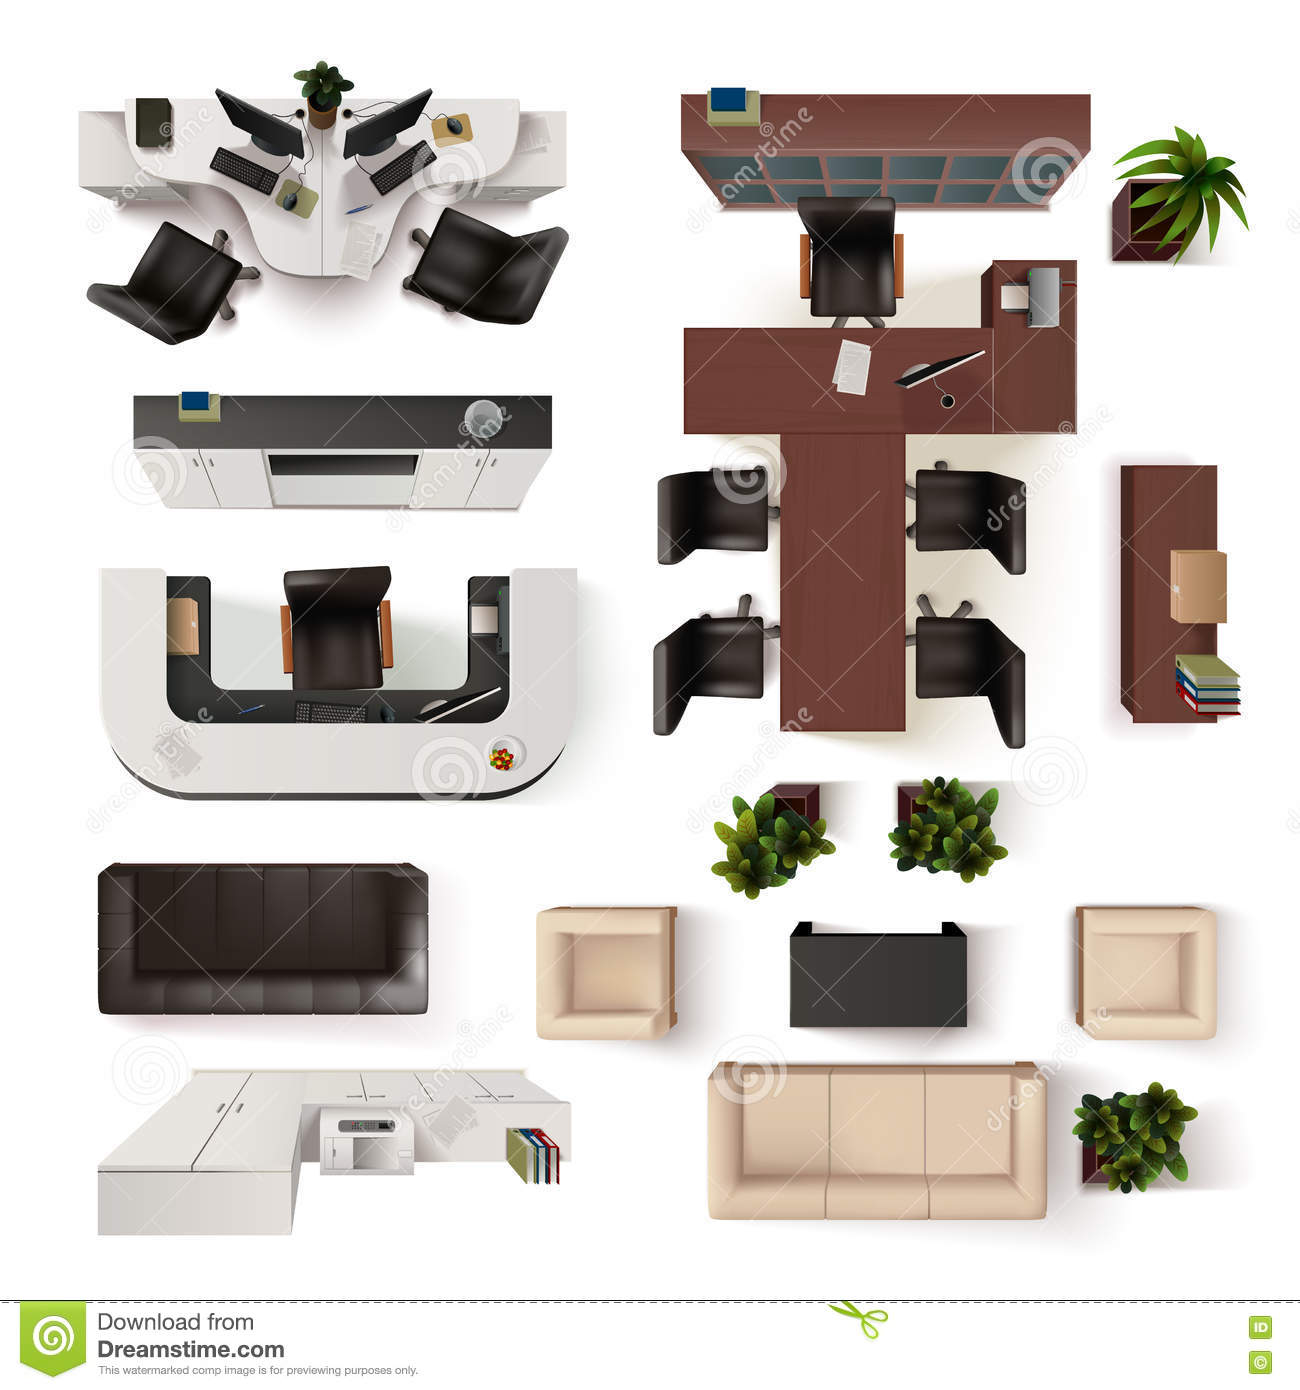 Office Interior Elements Top View Set Stock Vector  : office interior elements top view set collection vector illustration decorative design 73318582 from www.dreamstime.com size 1300 x 1390 jpeg 125kB